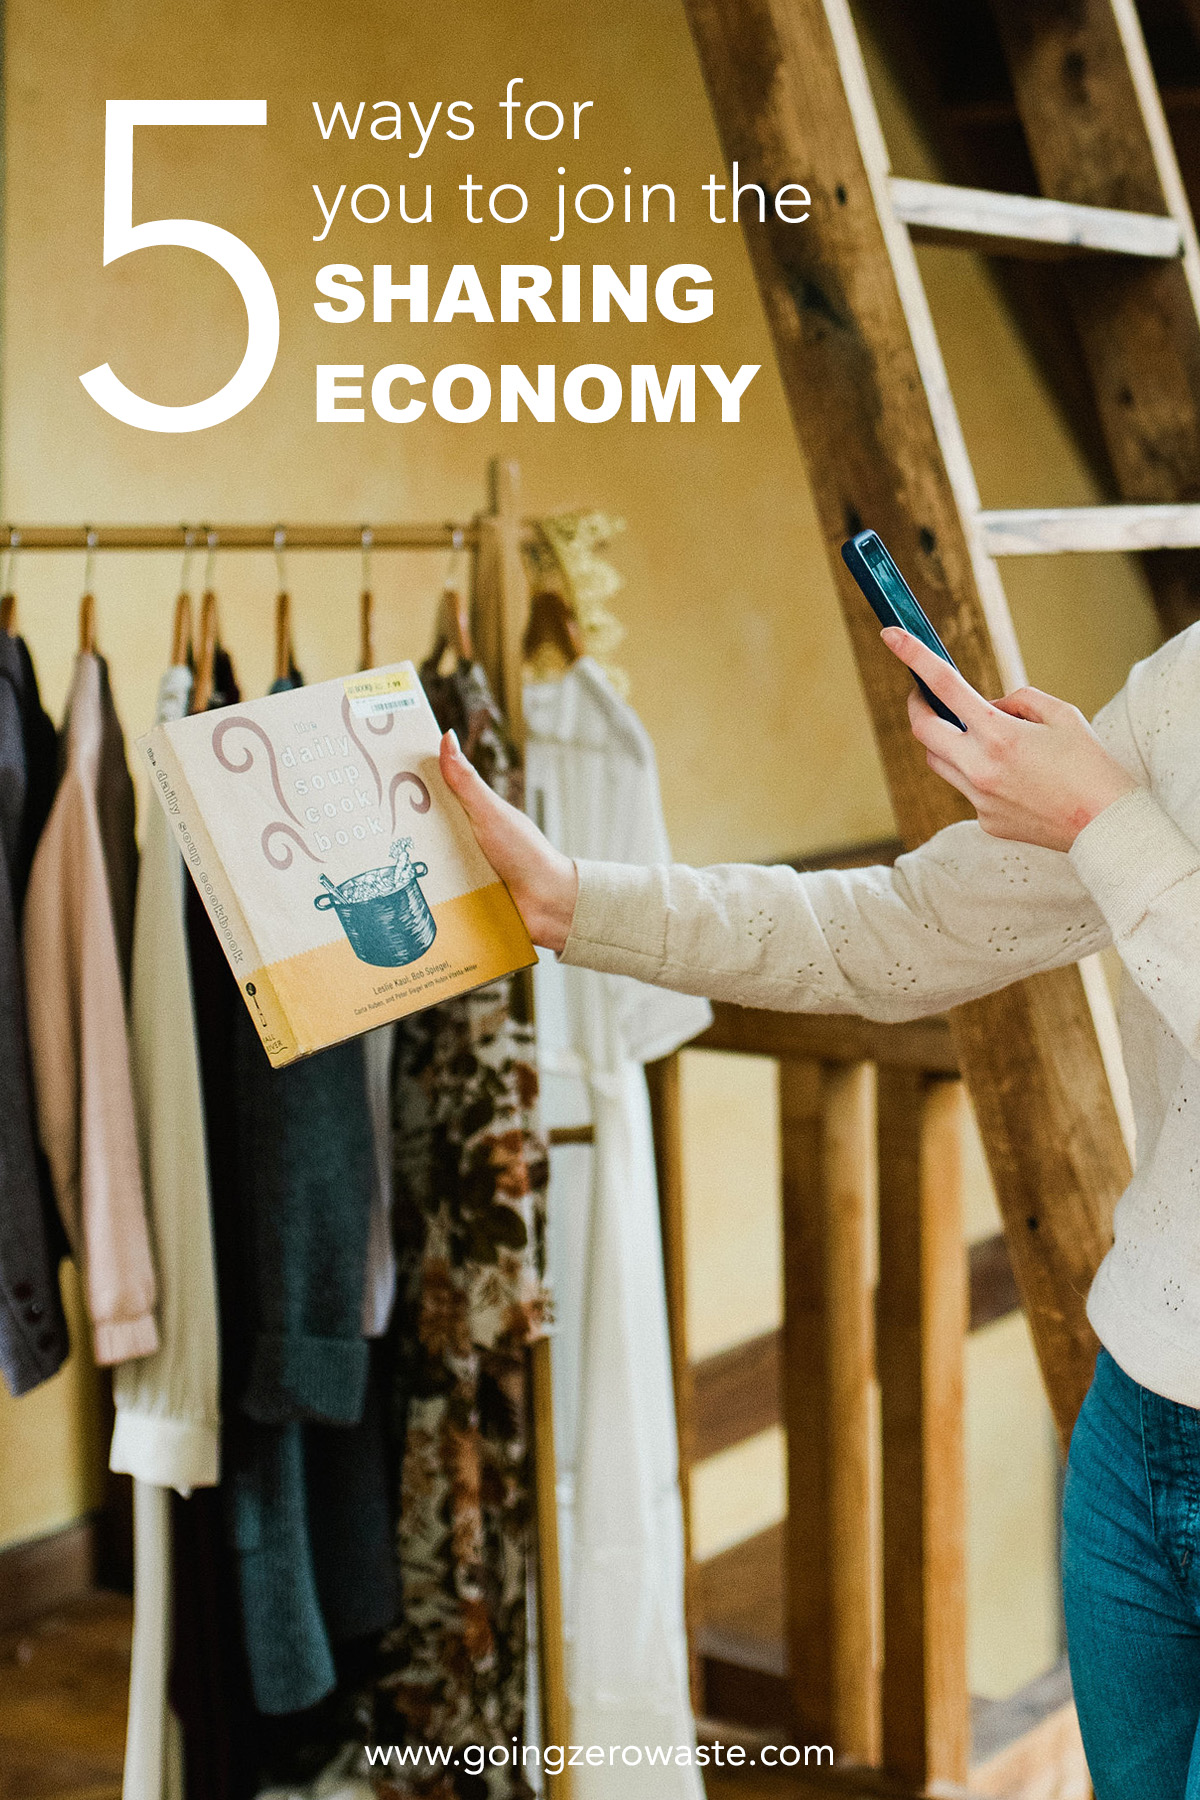 5 Ways for You to Join the Sharing Economy from www.goingzerowaste.com #sharingecononmy #zerowaste #ecofriendly